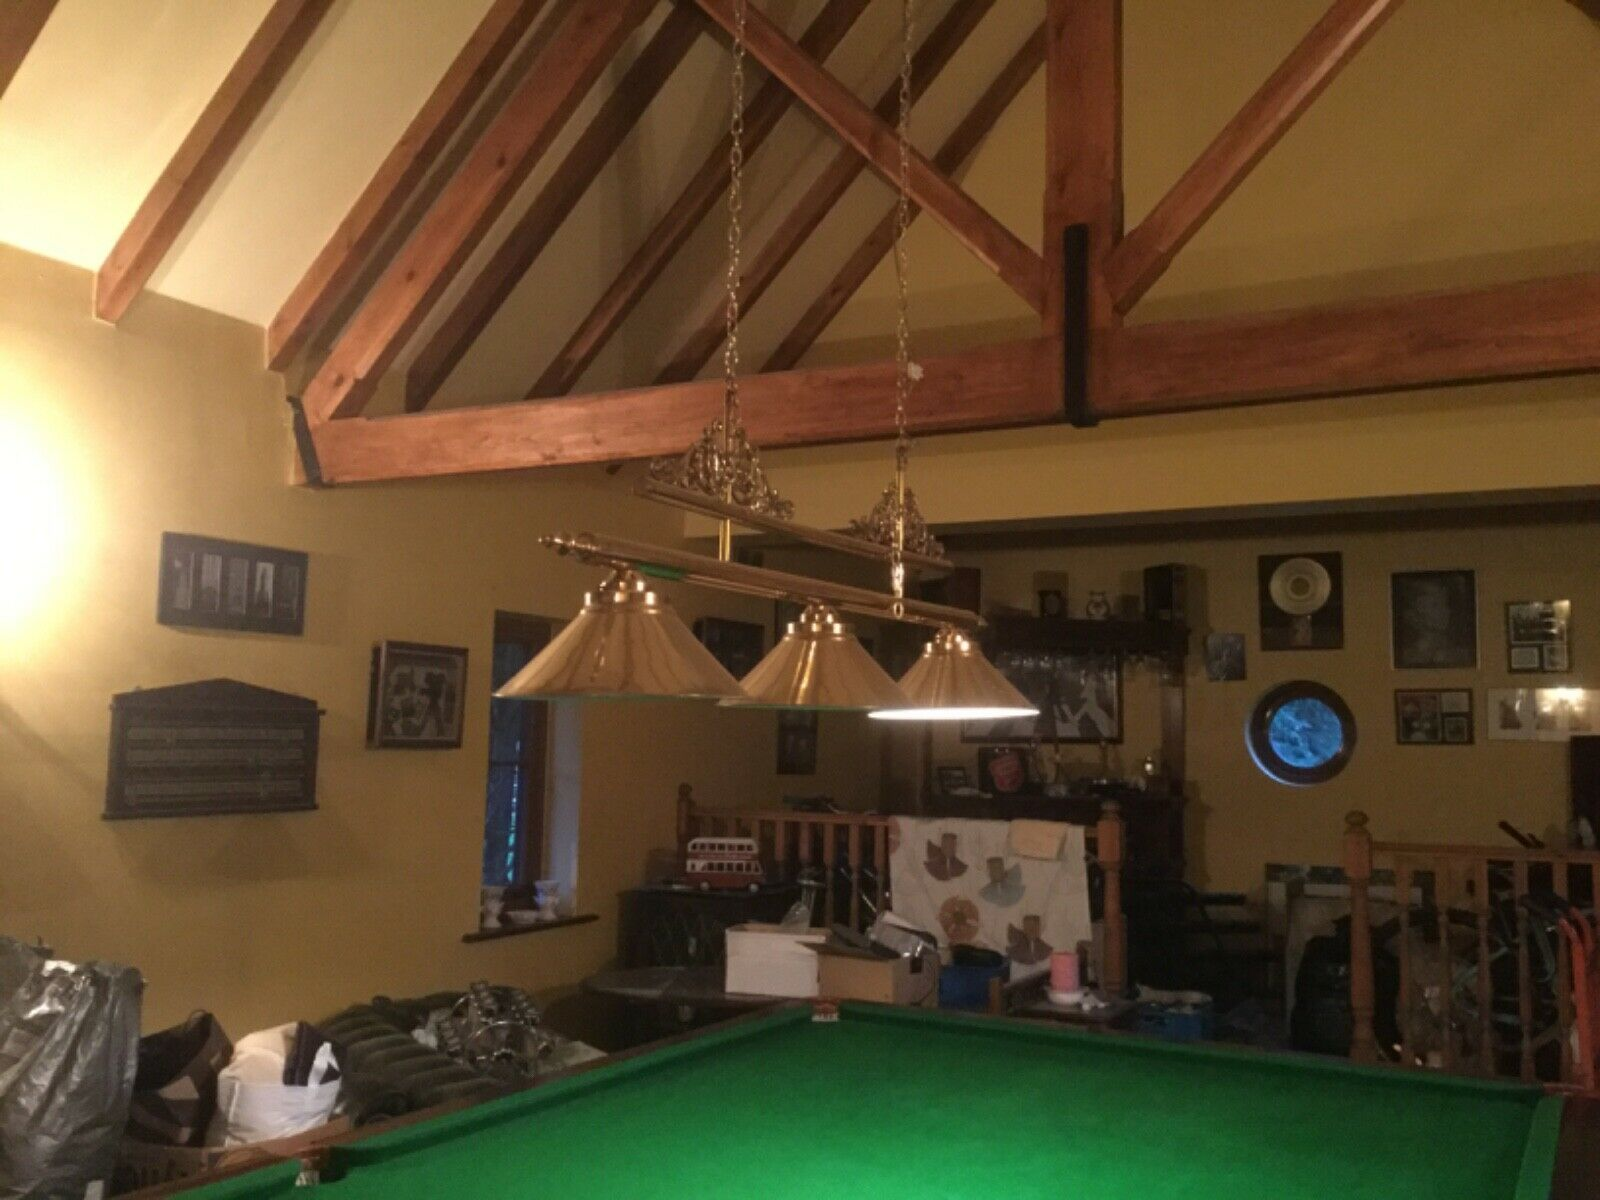 snooker accessories: cues, cue stand, traditional scoreboard, light fitting